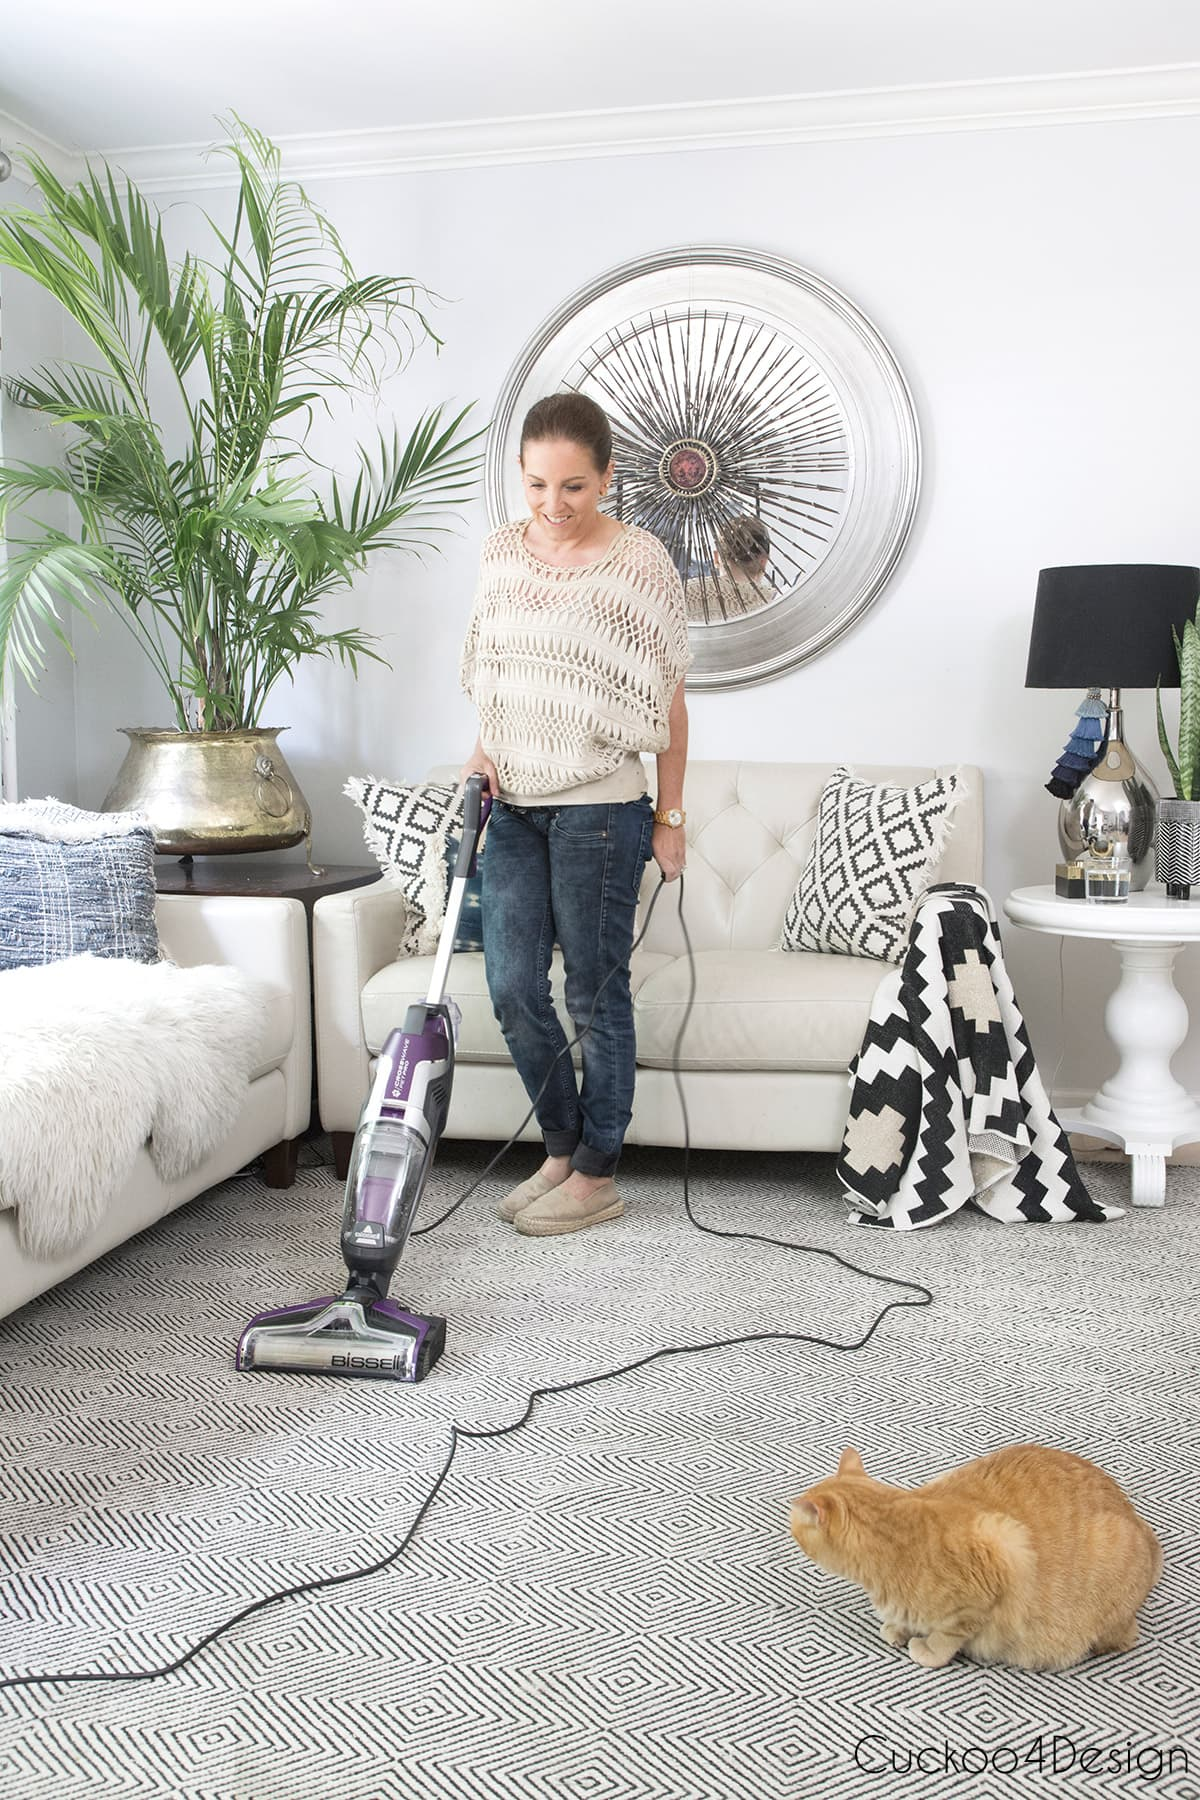 cleaning area rug with BISSELL crosswave pet pro